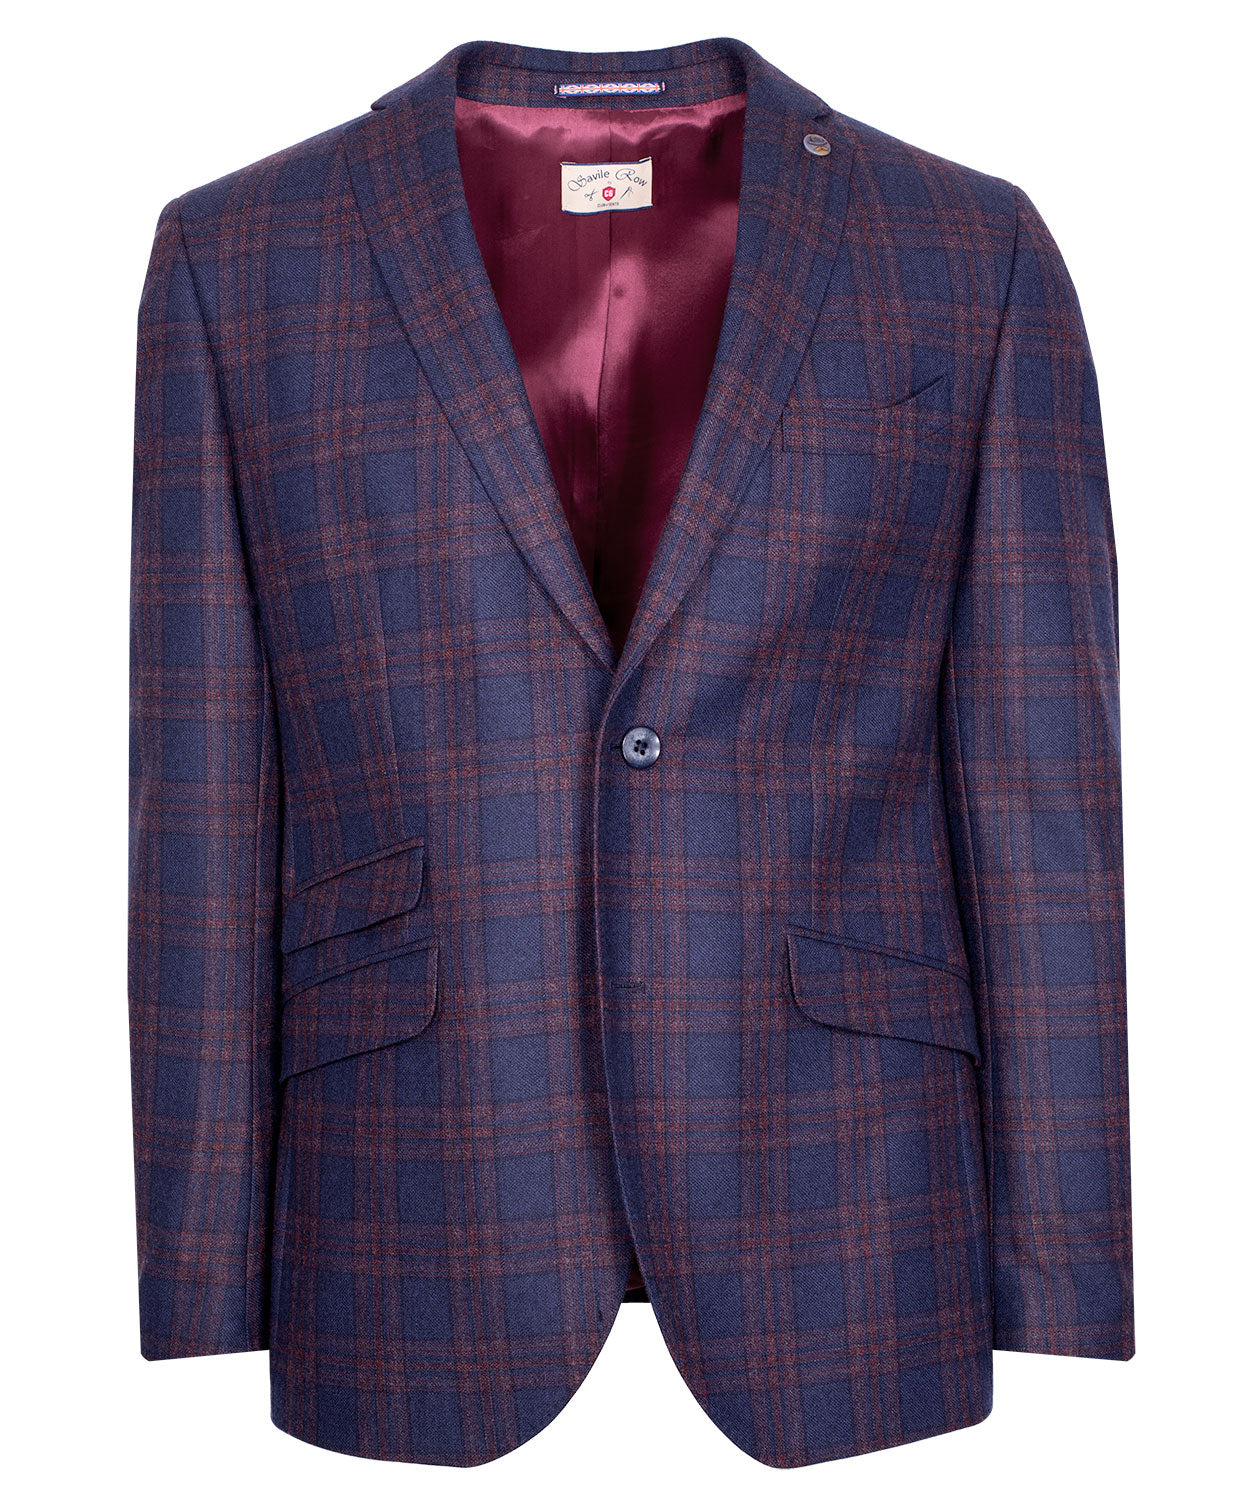 Charles Navy/Cognac Bold Milled Check Sport Jacket